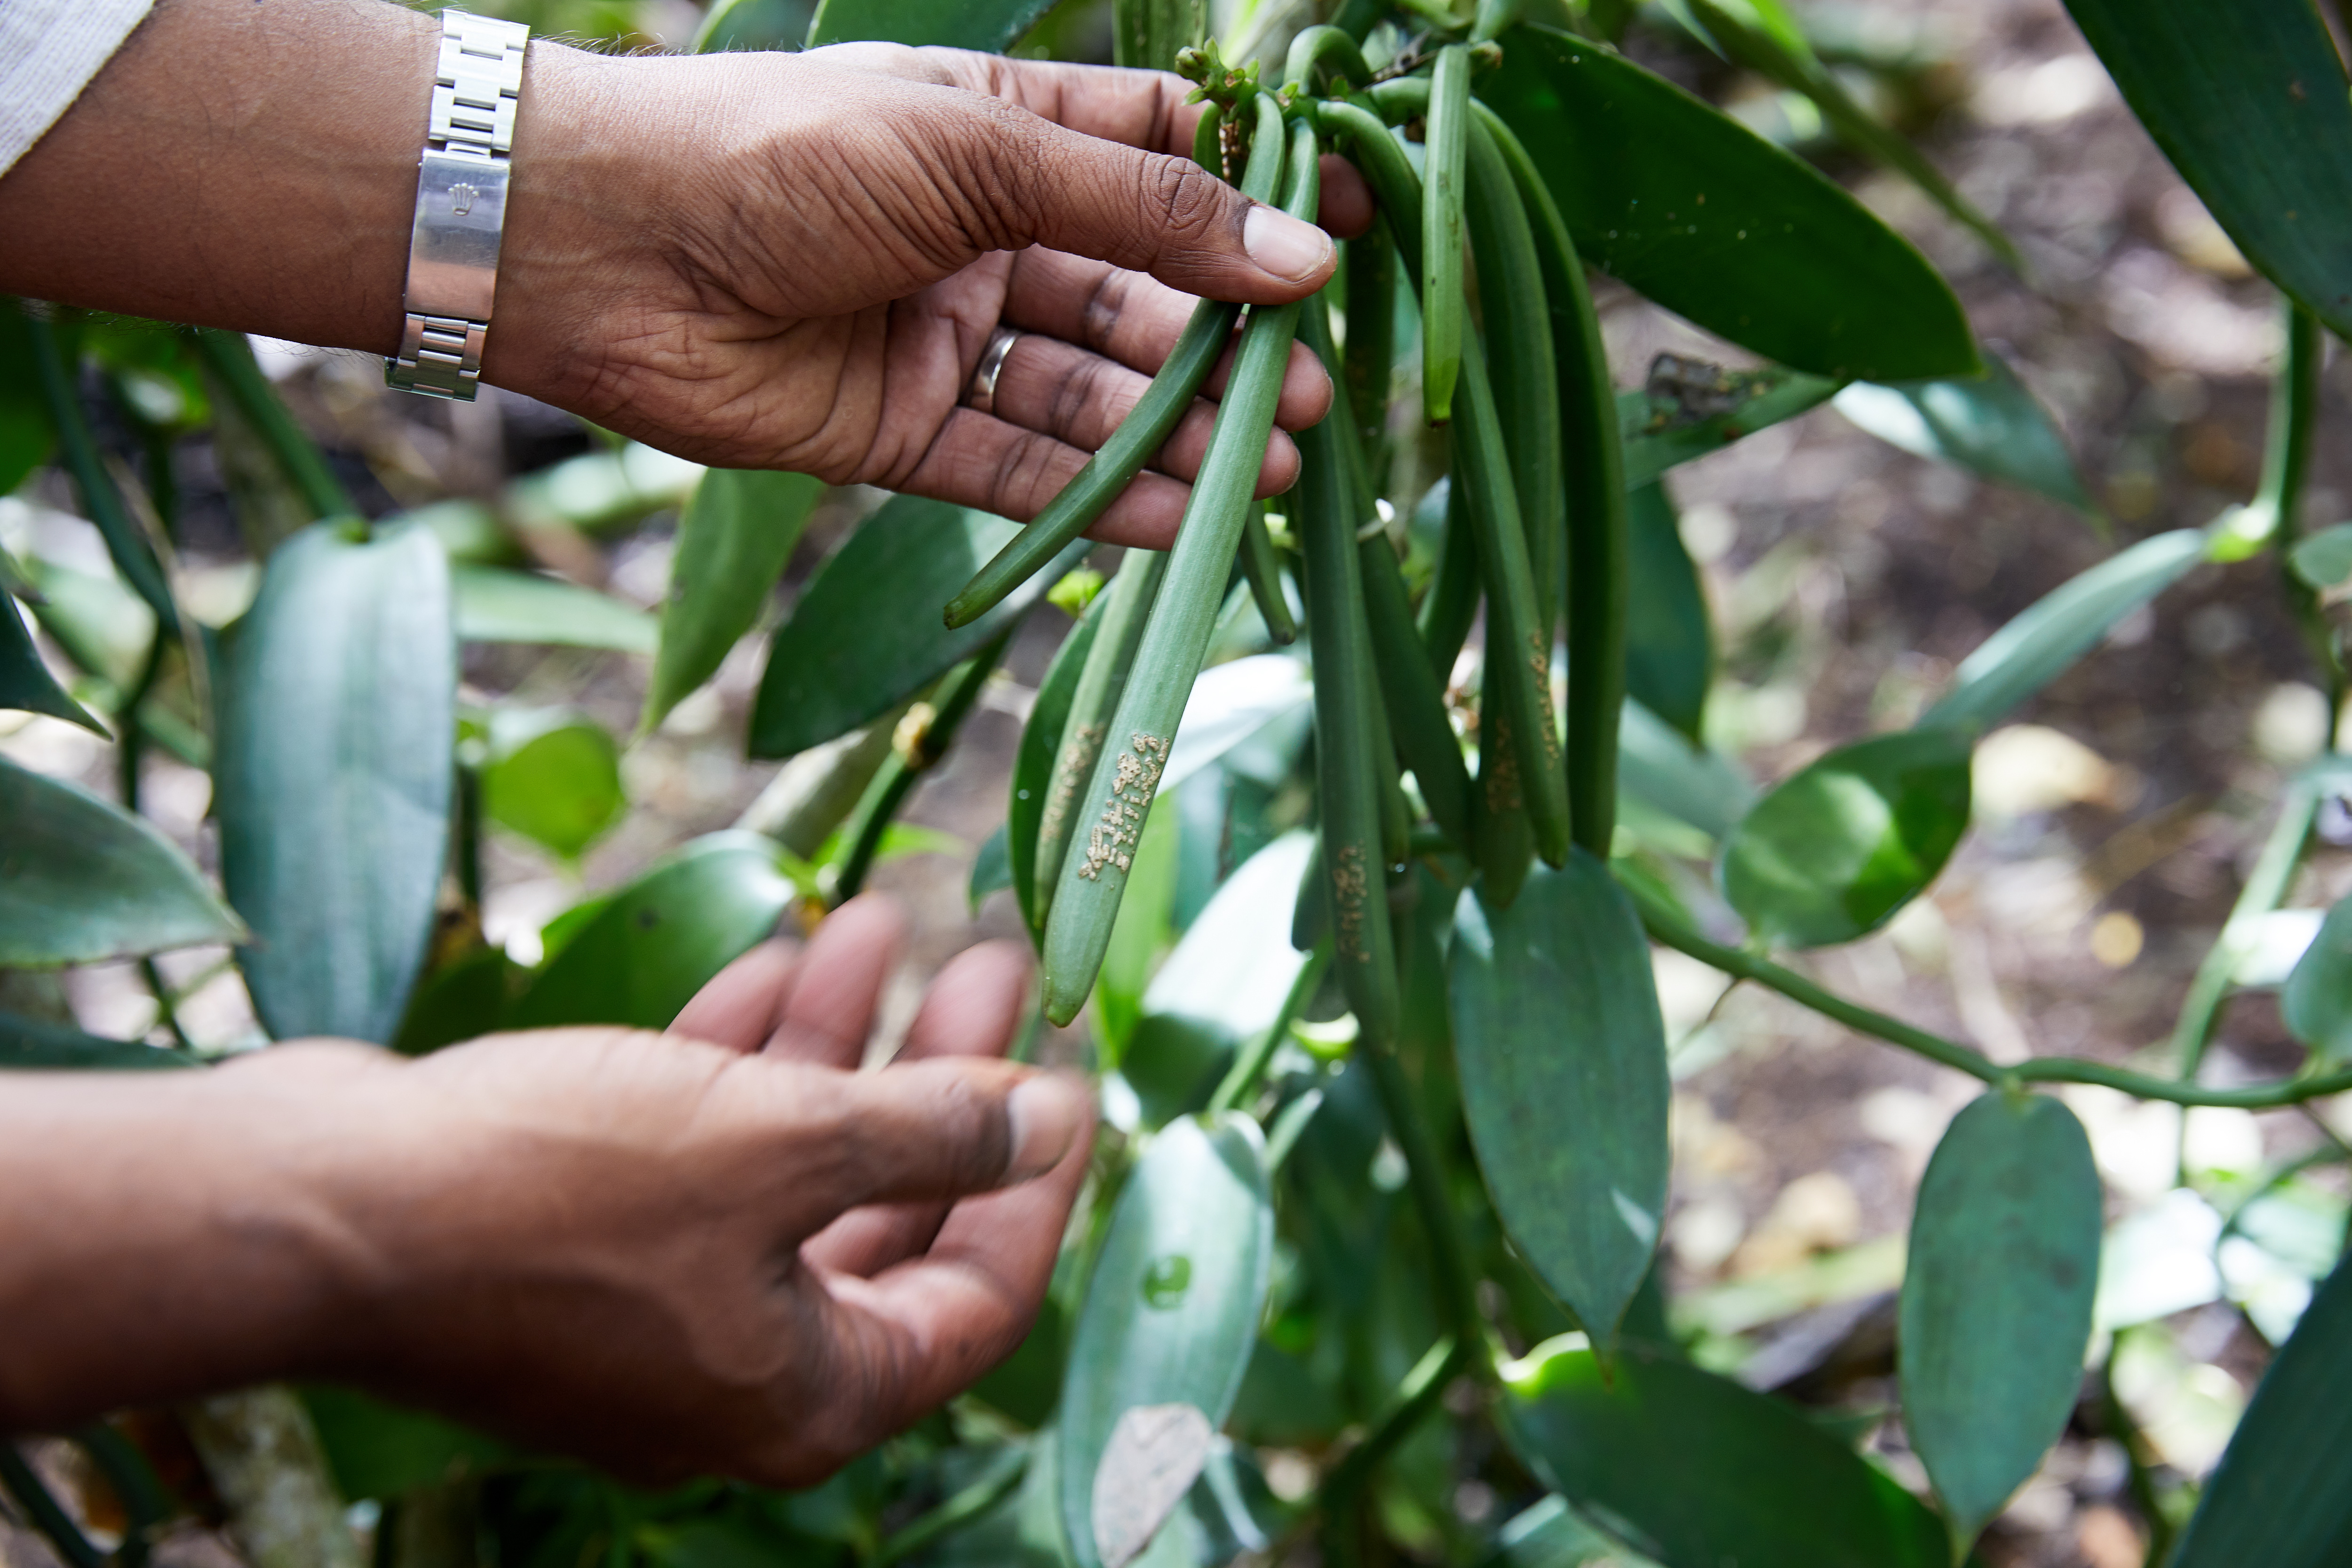 Plantation owners are stamping vanilla pods to tackle high theft levels.